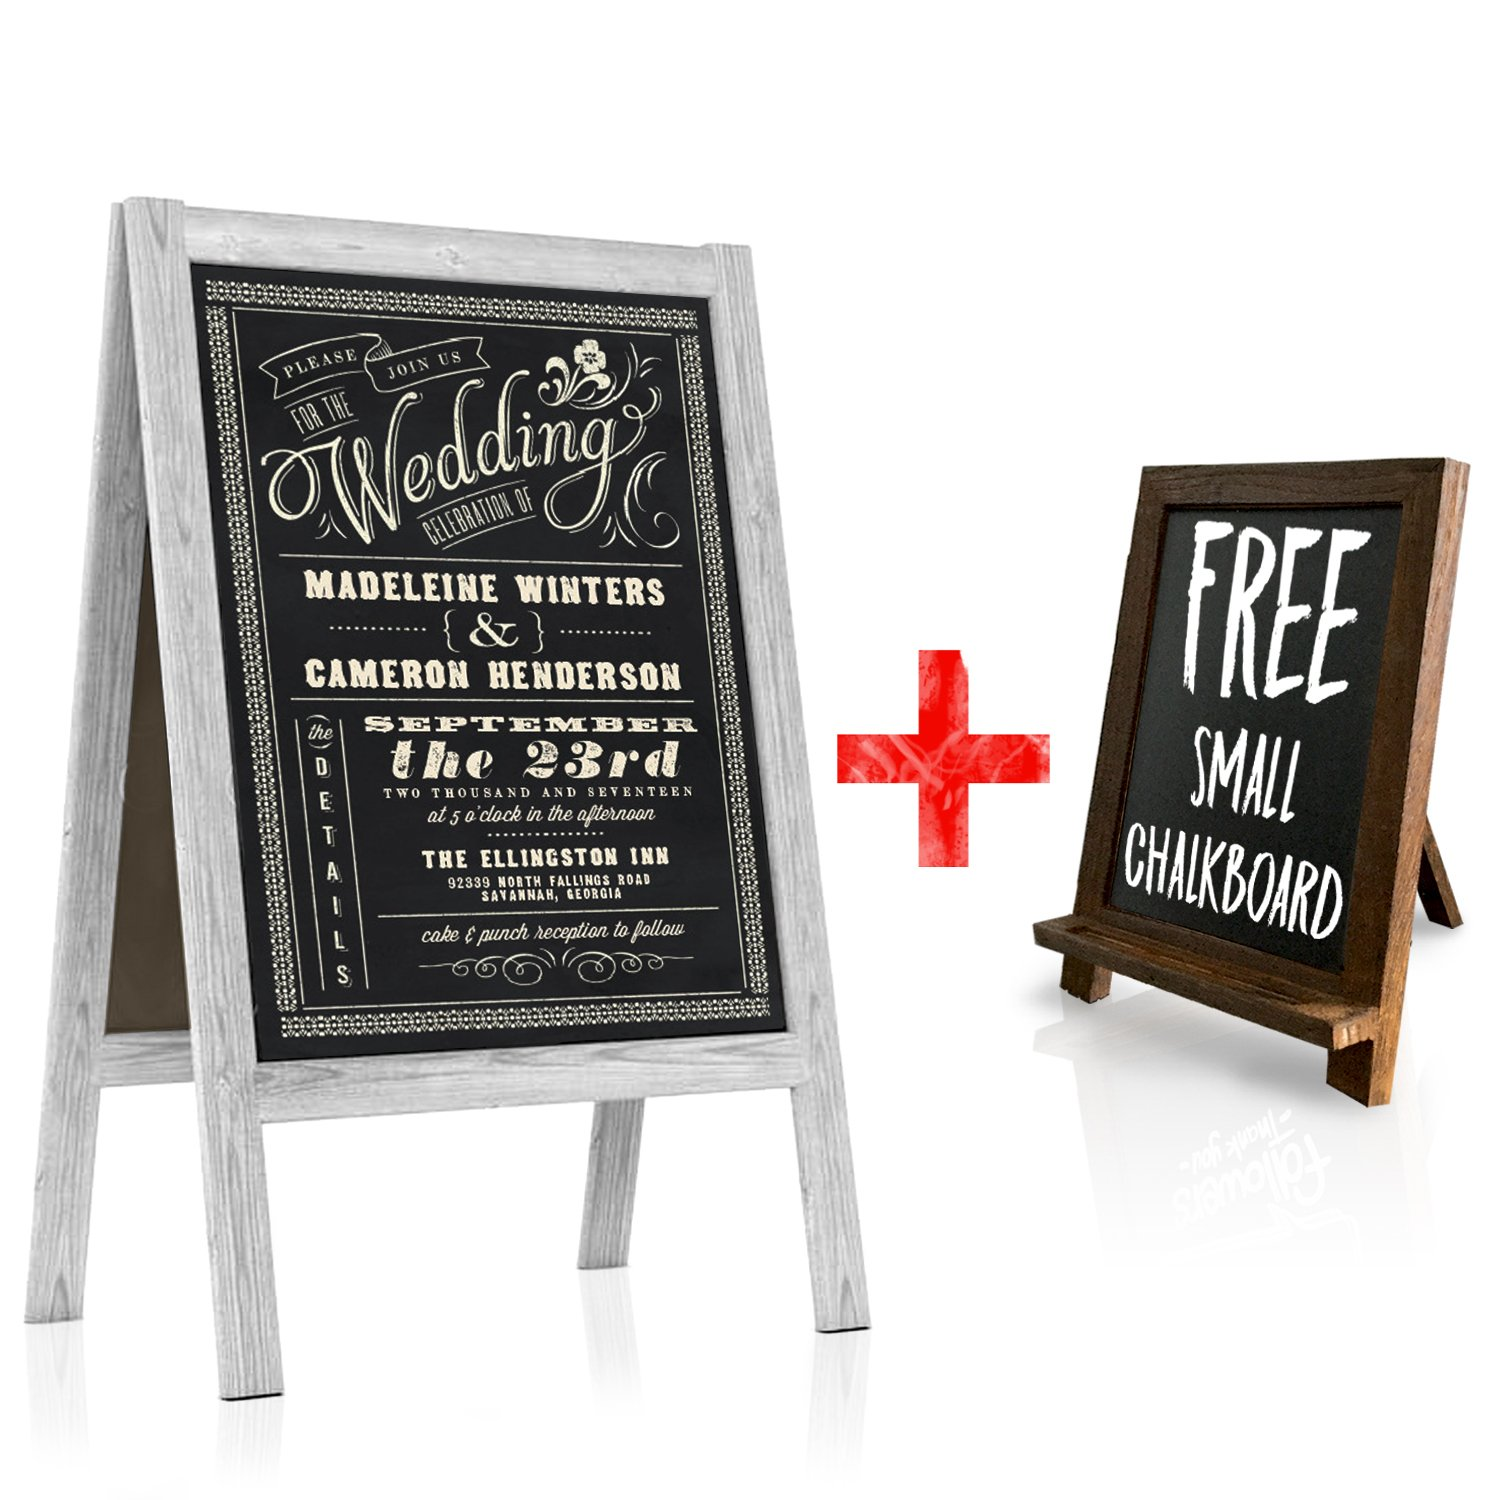 Chalkboard Wedding Sign - Large A Frame Standing Sidewalk | Vintage Sandwich Board Style with Rustic White Wood A-Frame for Indoor & Outdoor Use | Restaurant Menus, Cafe Specials, Business Displays Artsy Rhino